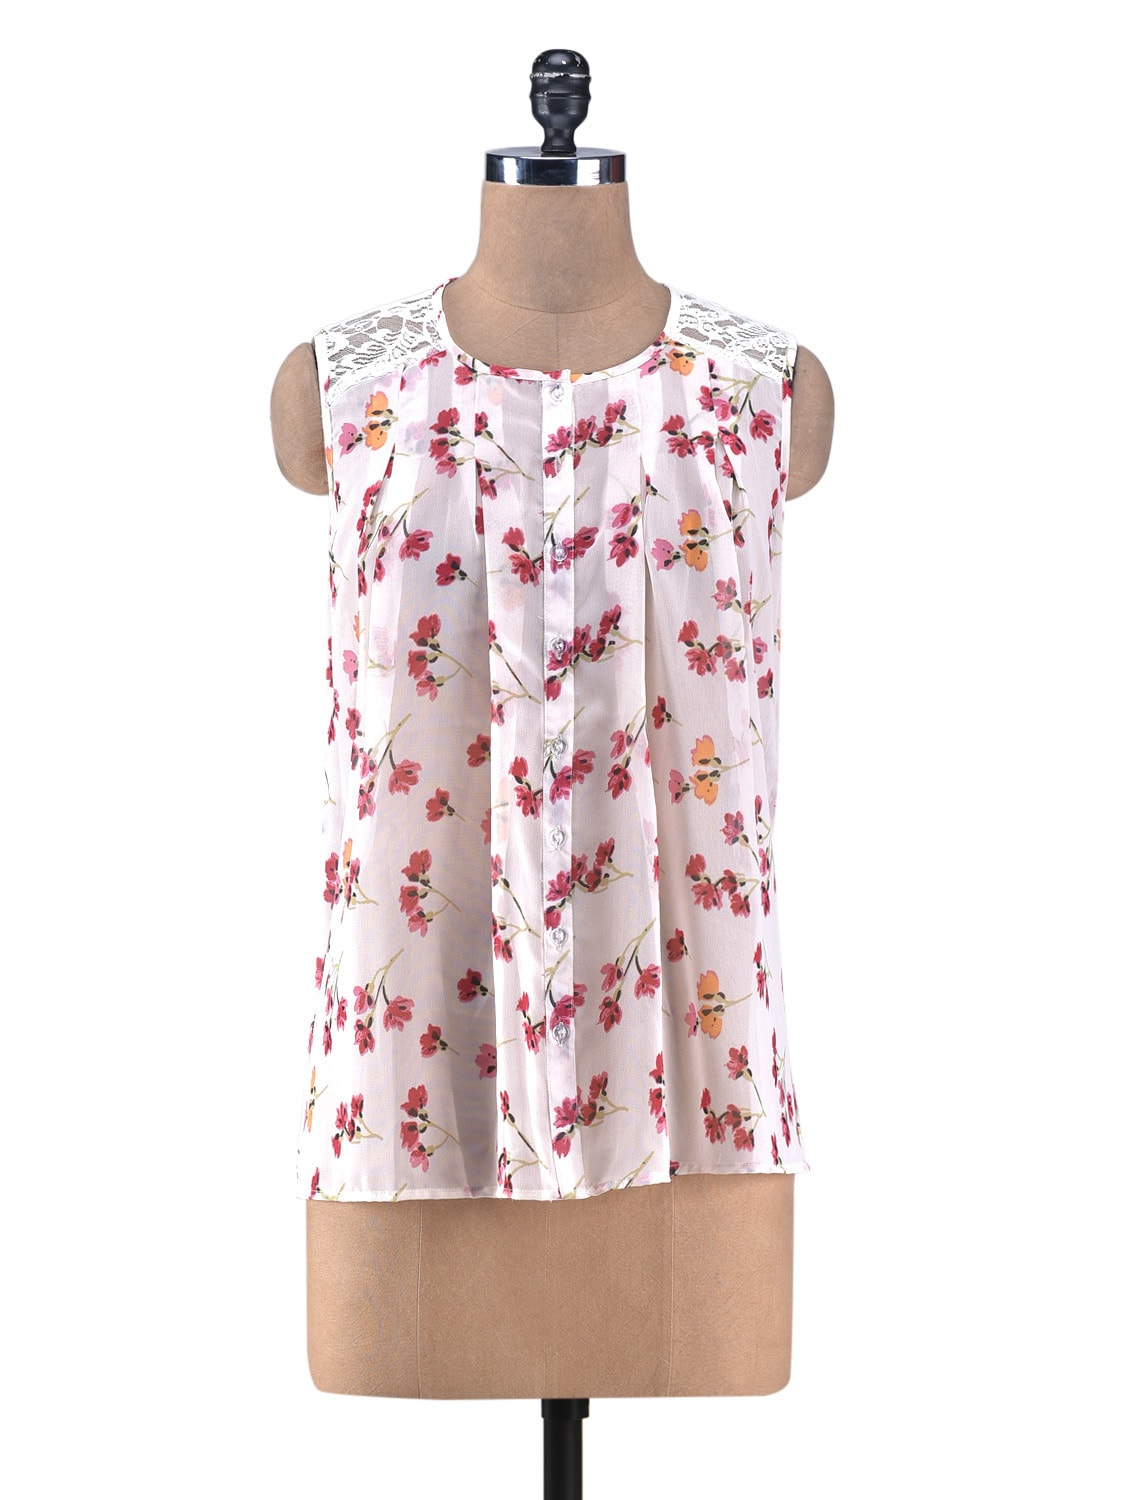 Peach Printed Gathered Top With Lace Yoke - By